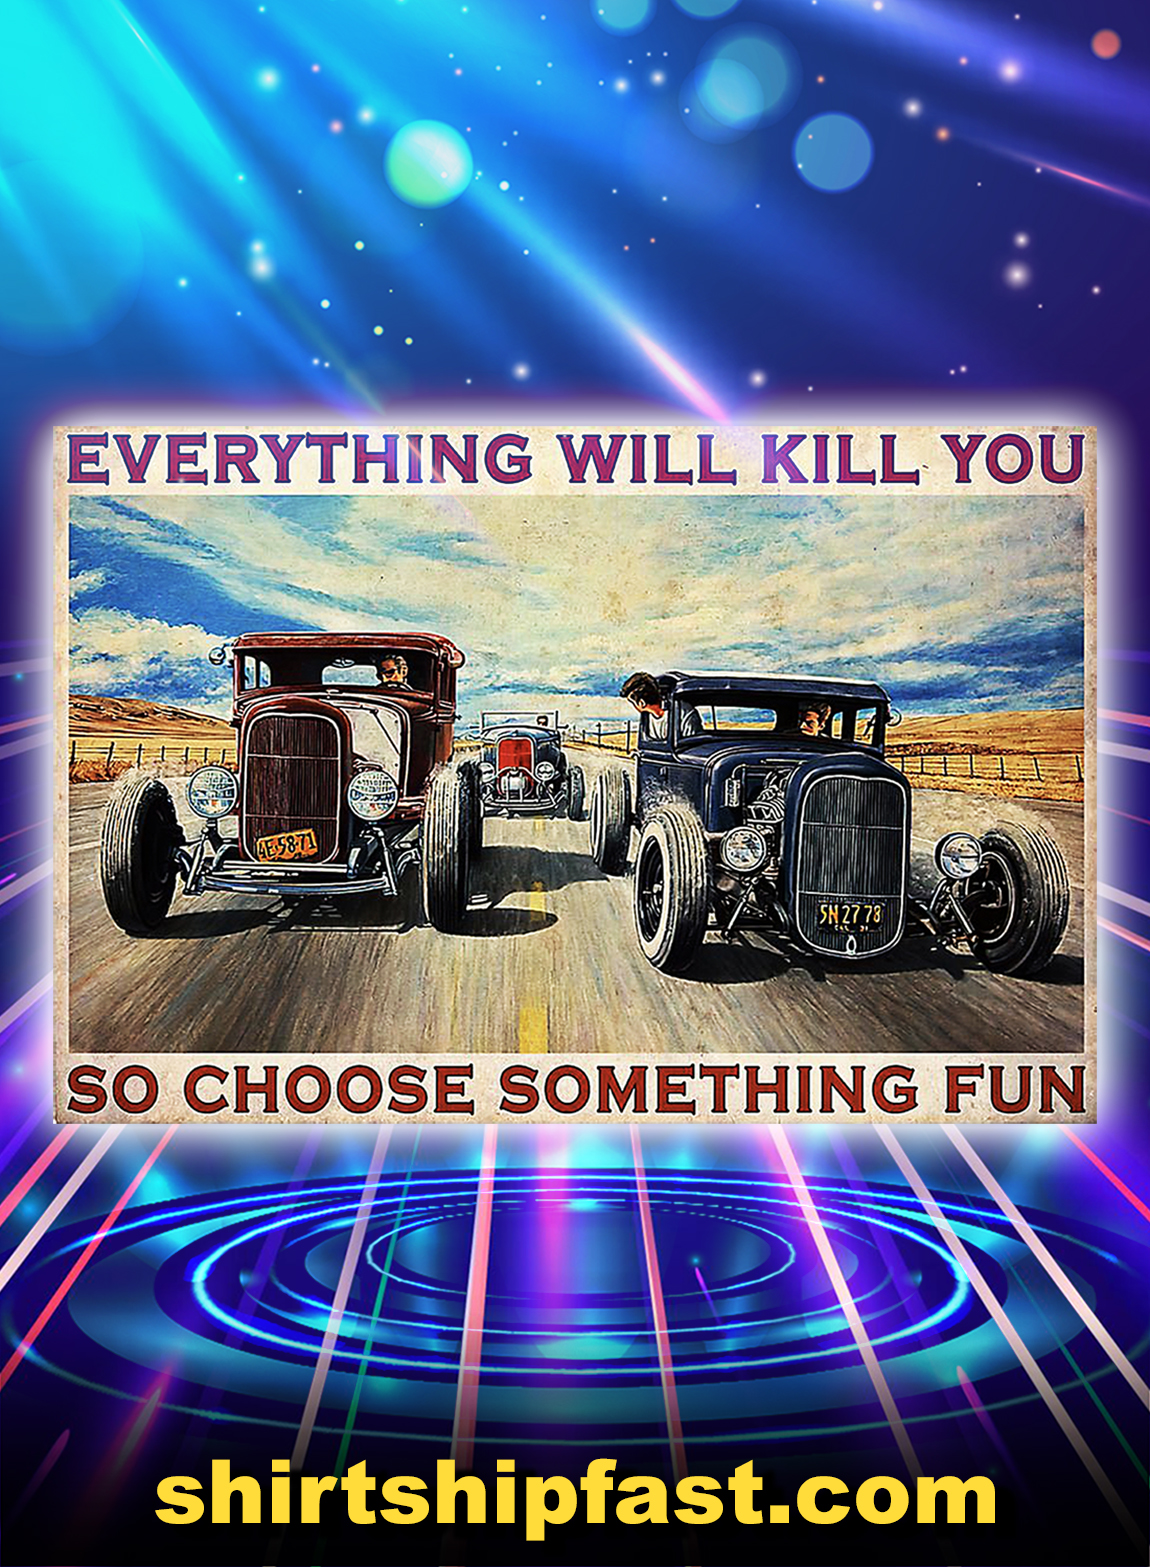 Hot rod everything will kill you so choose something fun poster - A2